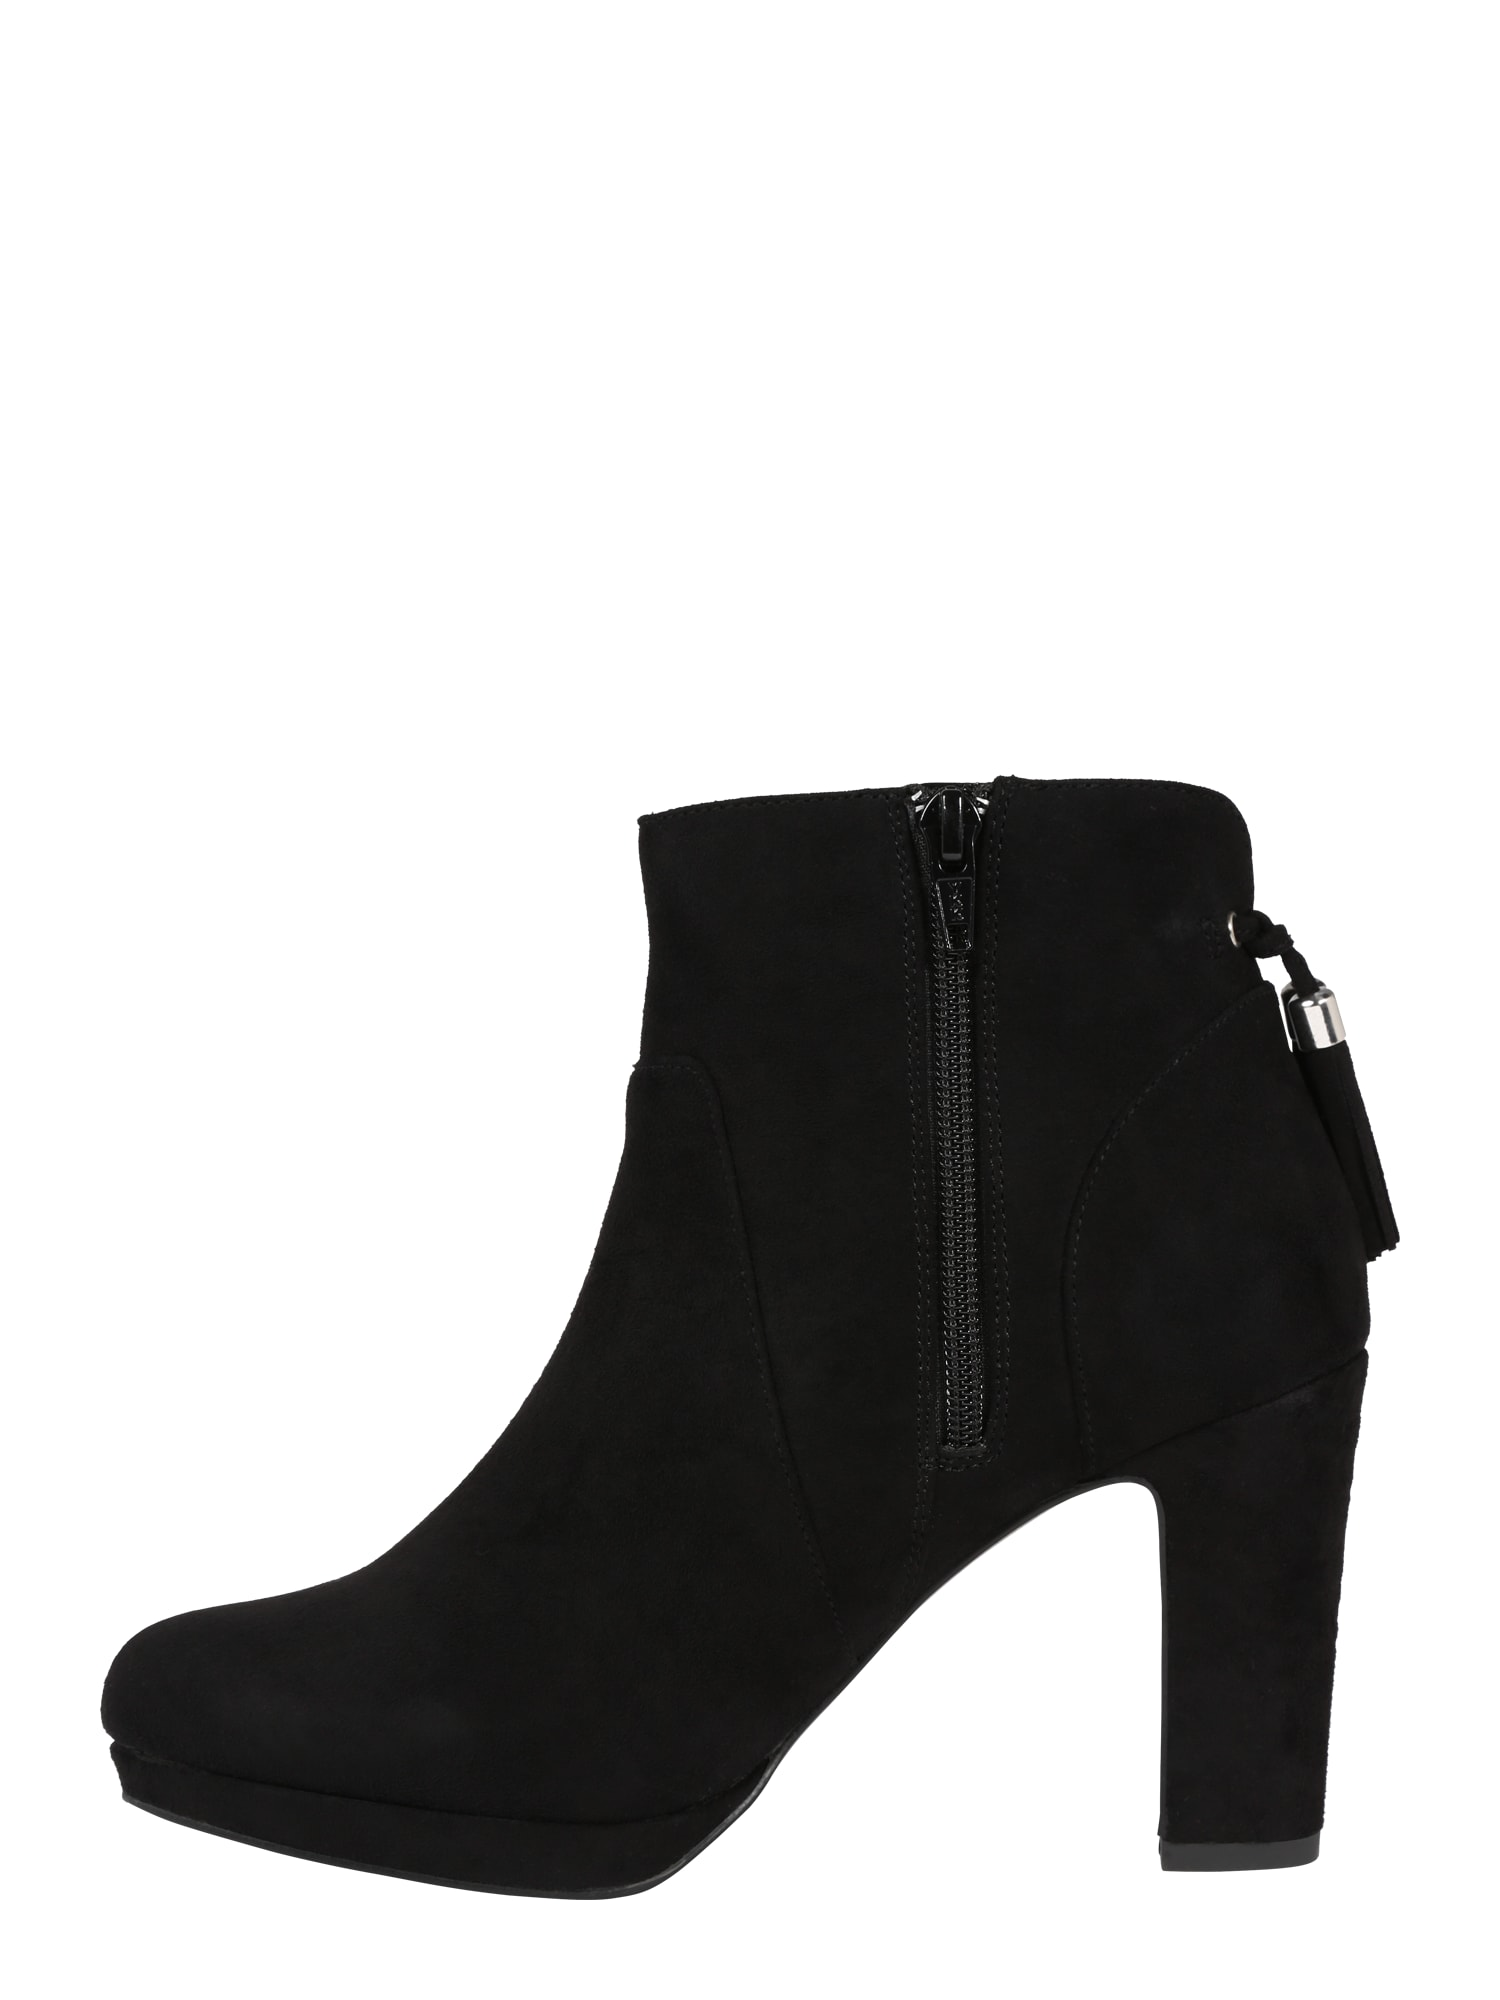 ABOUT YOU Ankelboots 'Alessandra'  svart